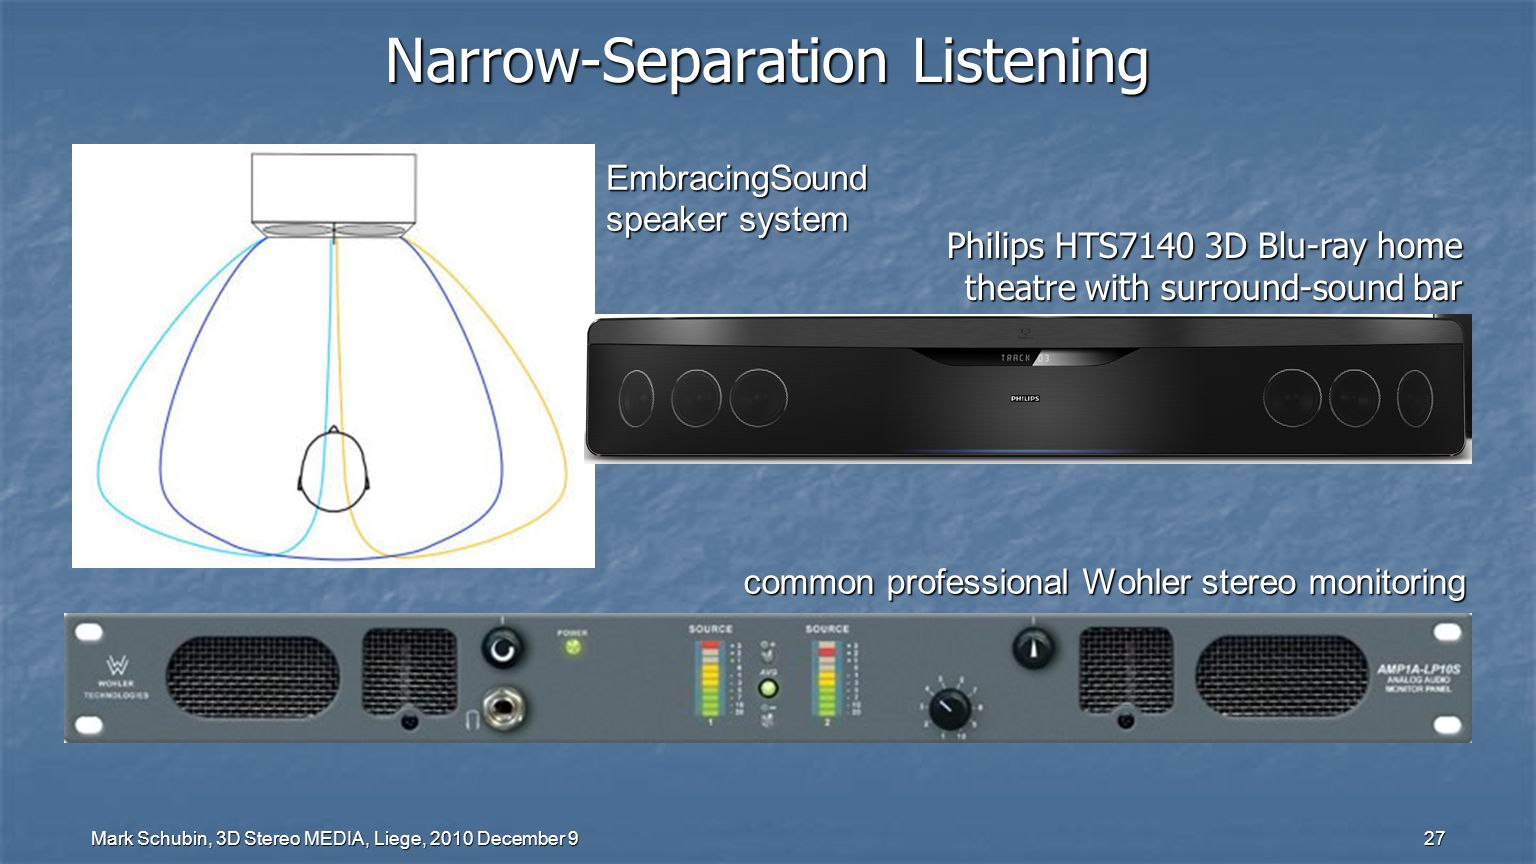 Mark Schubin, 3D Stereo MEDIA, Liege, 2010 December 9 27 Narrow-Separation Listening EmbracingSound speaker system common professional Wohler stereo monitoring Philips HTS7140 3D Blu-ray home theatre with surround-sound bar